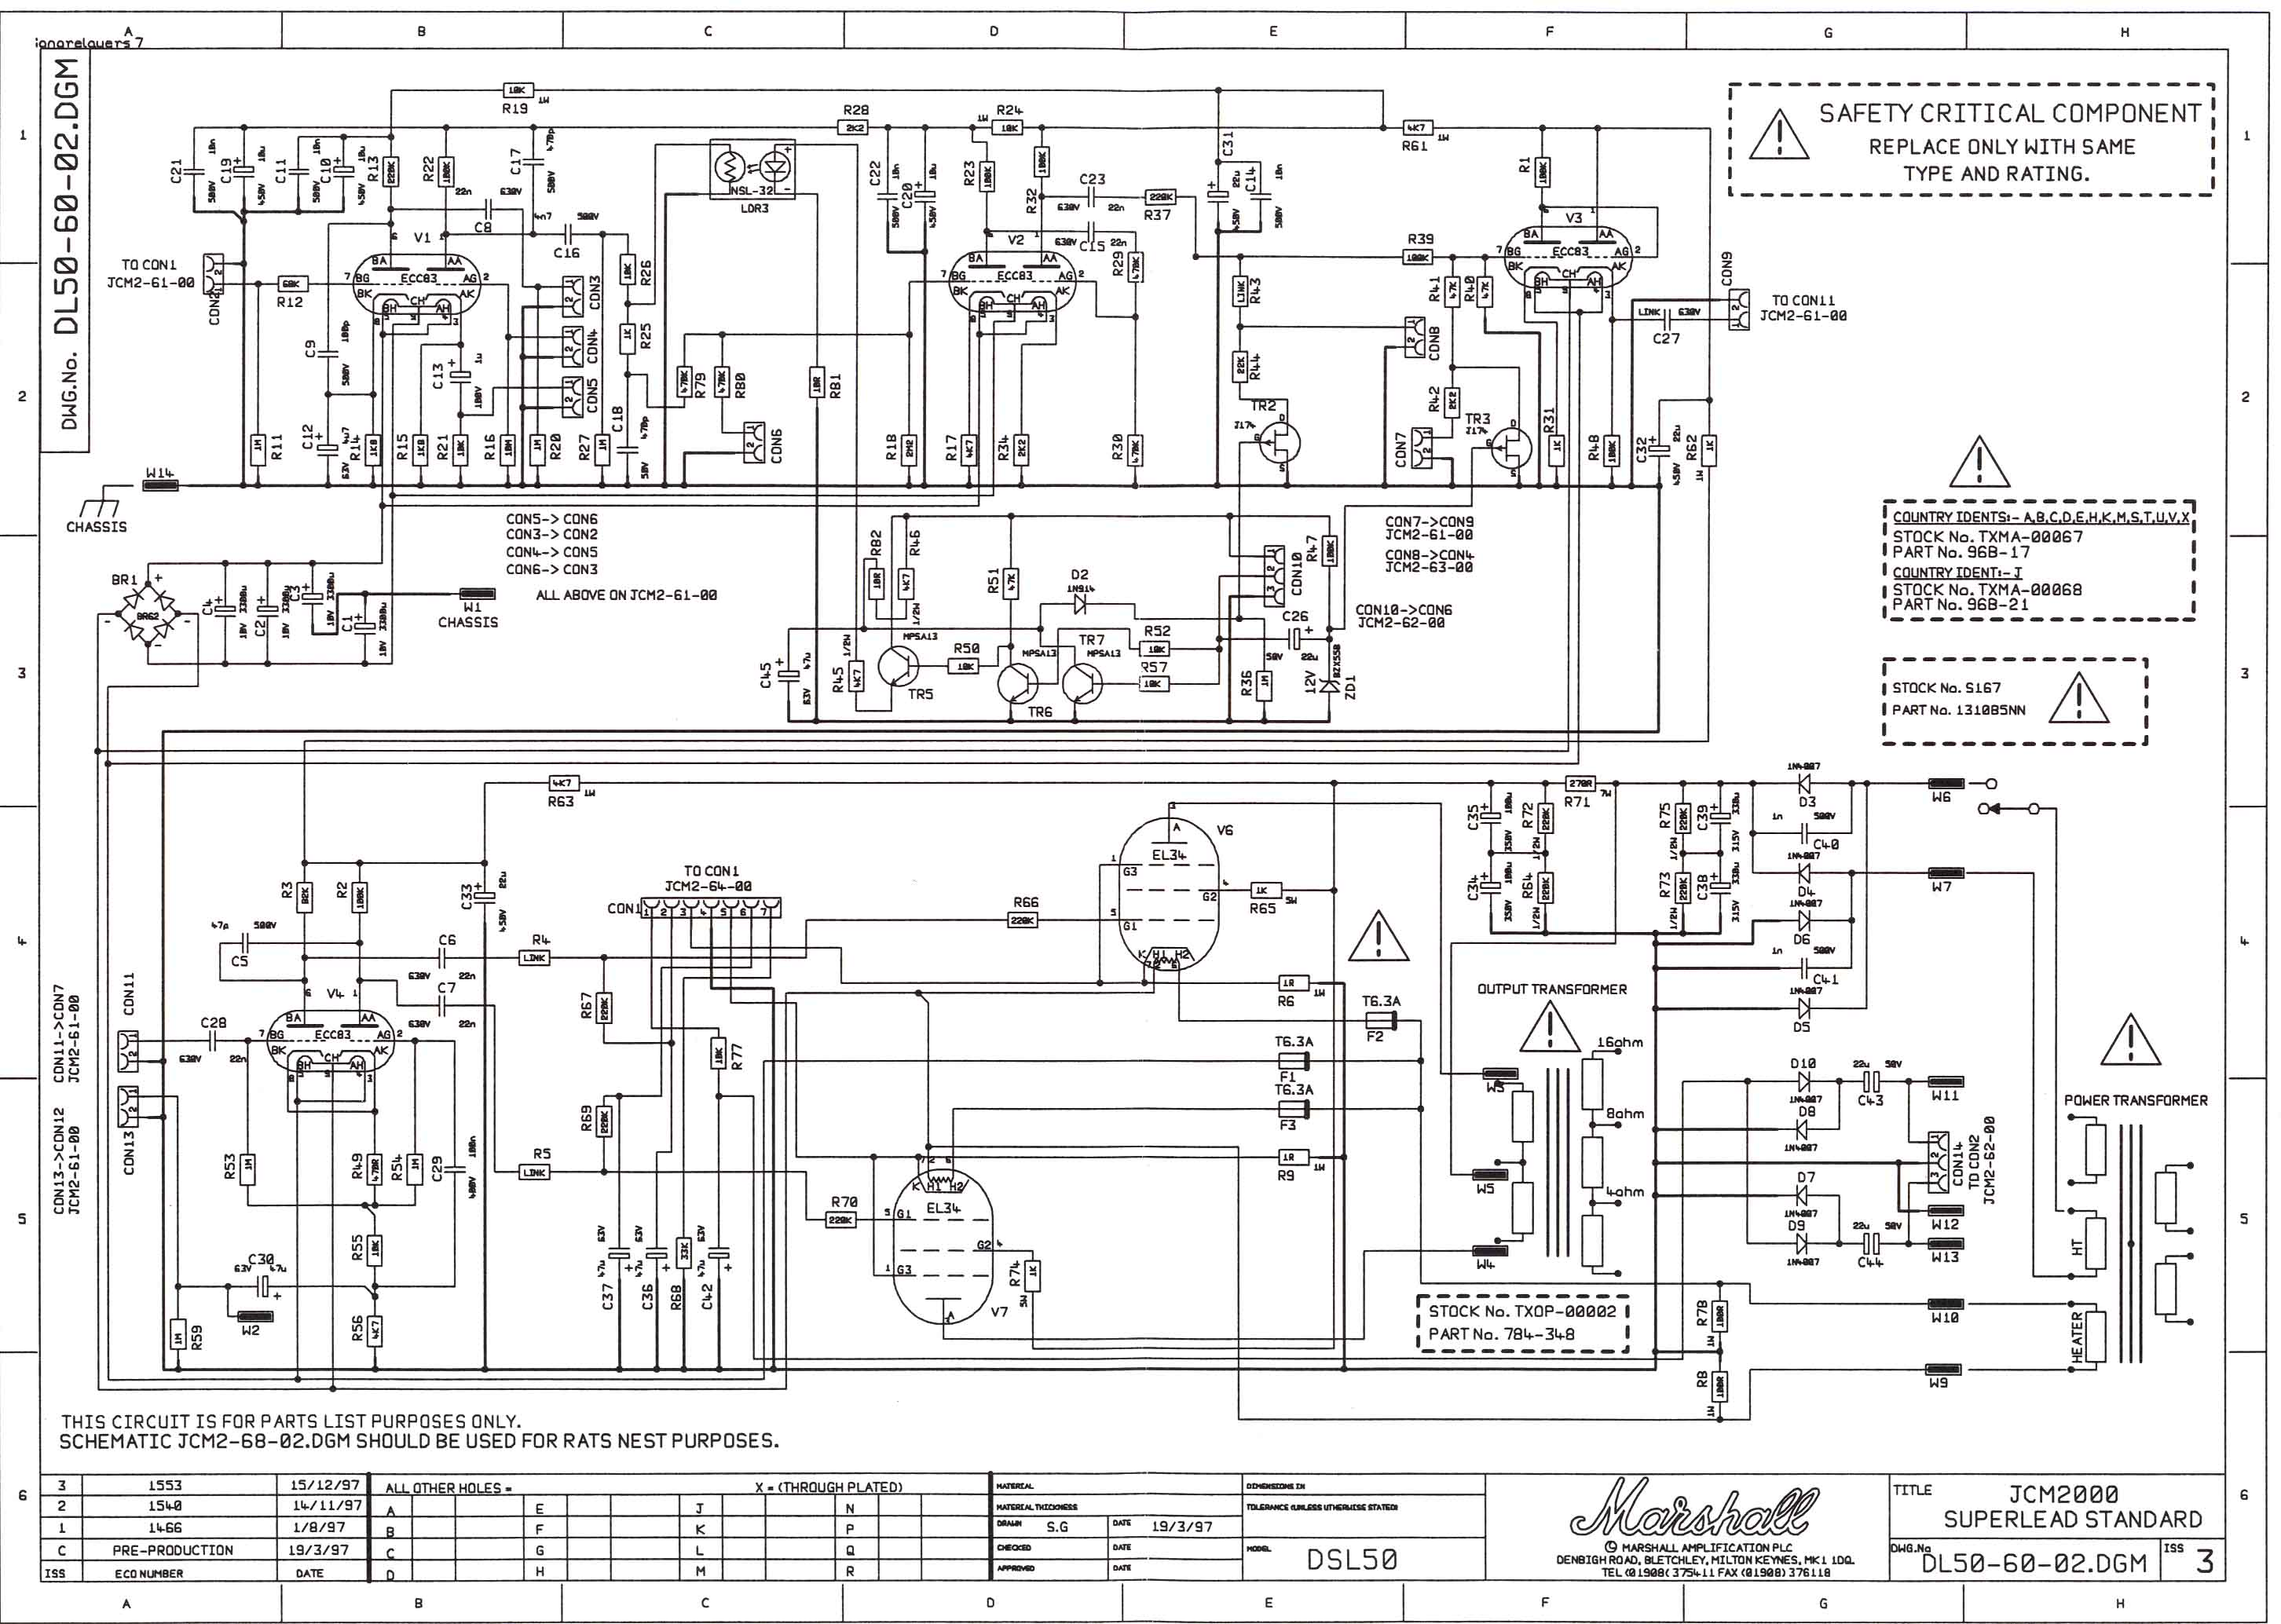 Marshall Amp Schematics - www.thetubestore.com on motor schematics, radio schematics, speaker schematics, generator schematics, wire schematics, ic circuit schematics, modem schematics, led schematics, orange amp schematics, robot schematics, guitar schematics, valve schematics, ulf receiver schematics, audio circuit schematics, electronic circuit schematics, astable multivibrator schematics, computer schematics, heathkit schematics, transformer schematics, tube schematics,